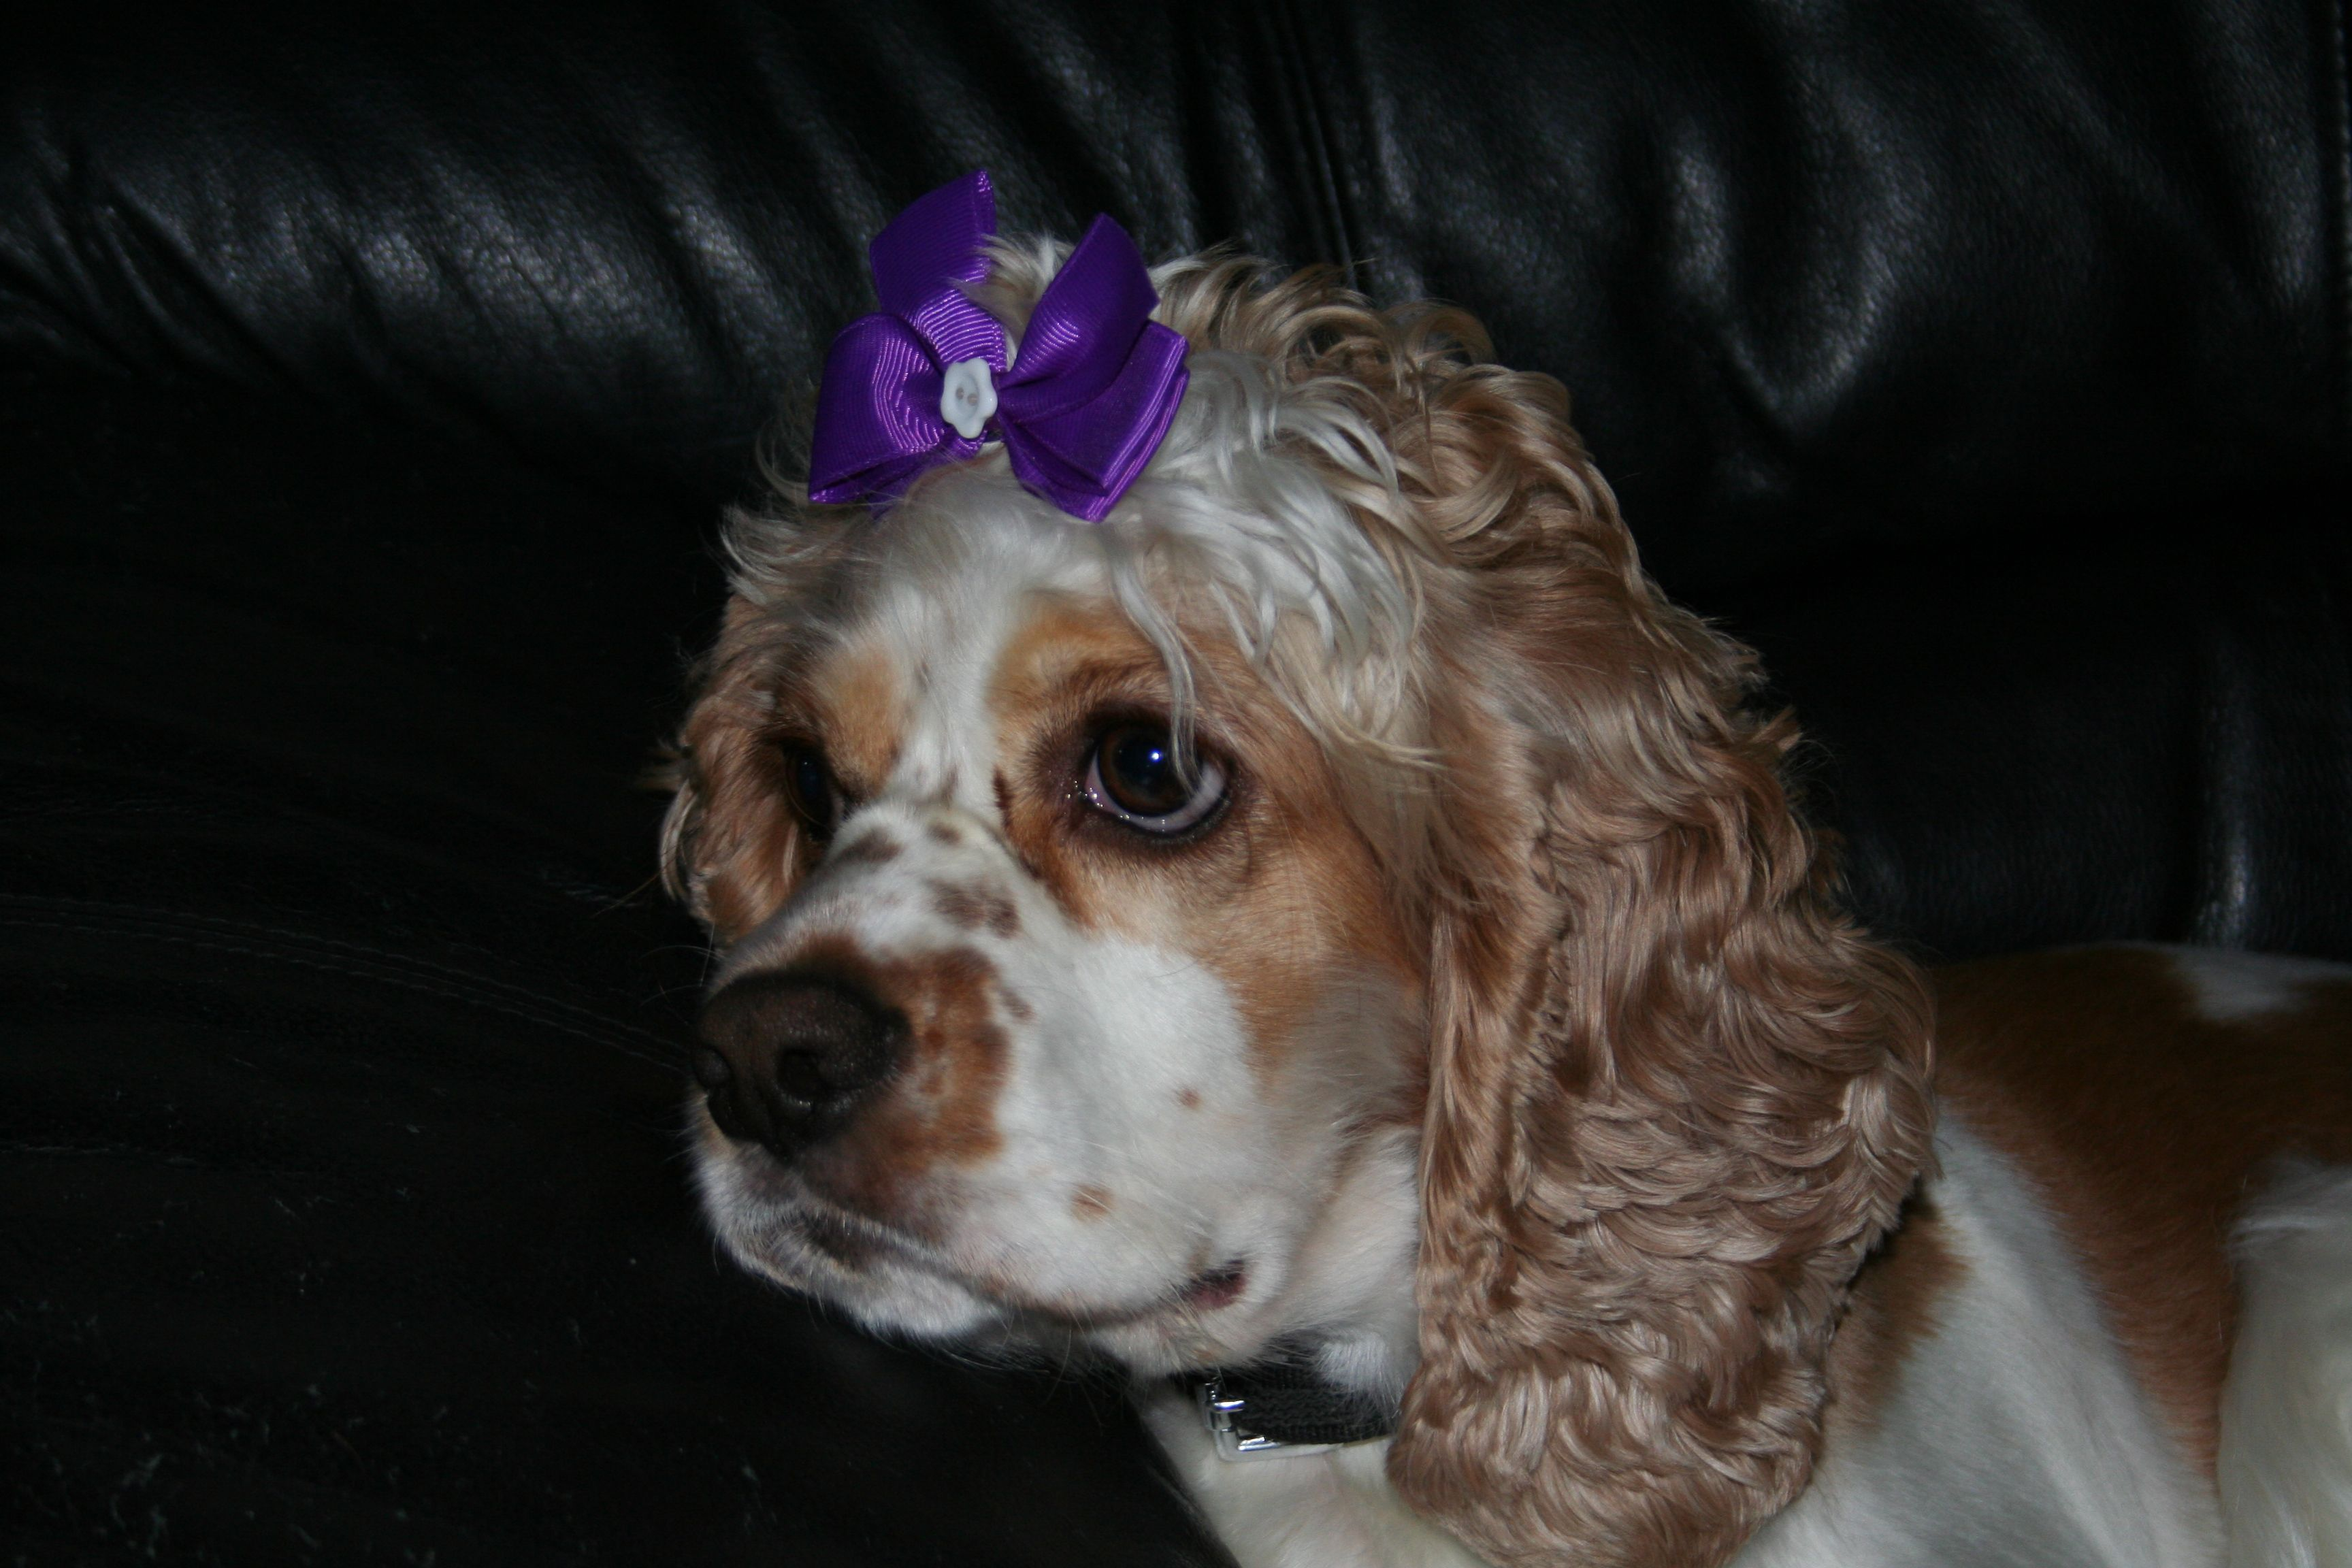 Jolene I Really Had No Intention Of Doing This To You She Nudged Me Until I Got Fed Up And Stuck Yorkie Poo American Cocker Spaniel Cocker Spaniel